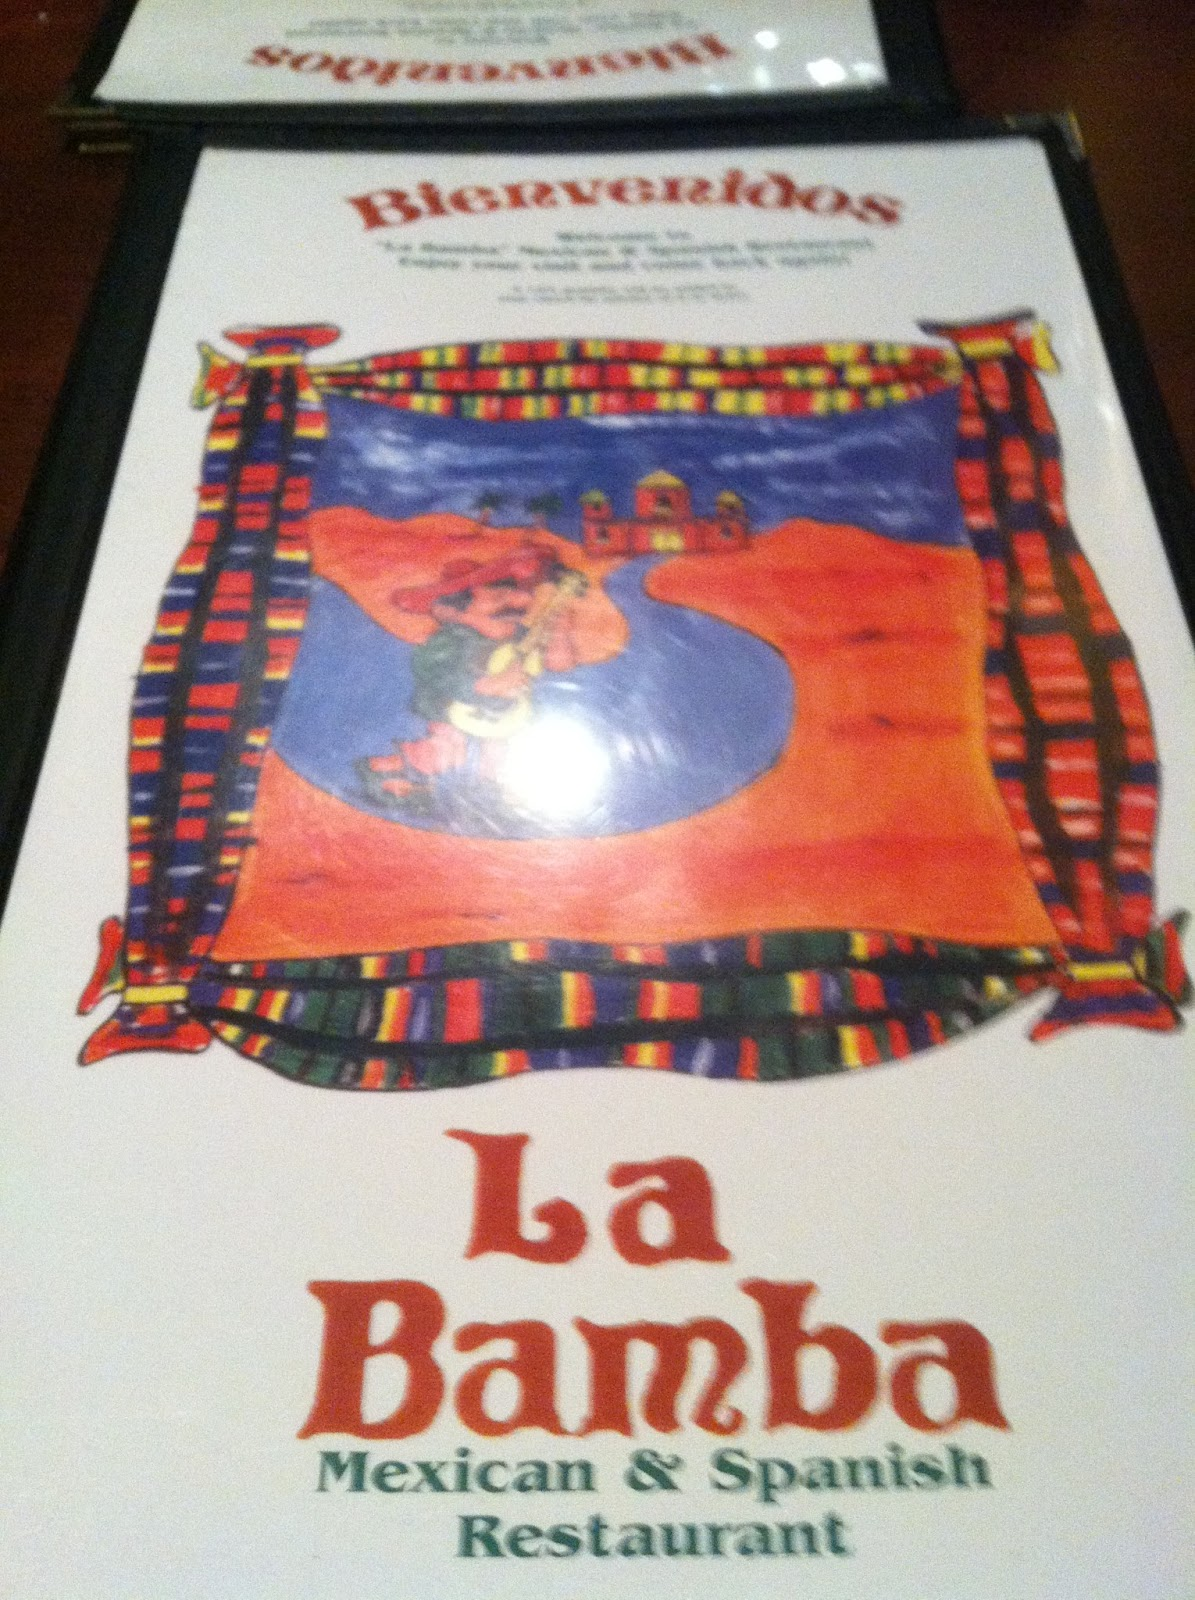 Tipsy foodie la bamba north palm beach fl - Mexican restaurant palm beach gardens ...